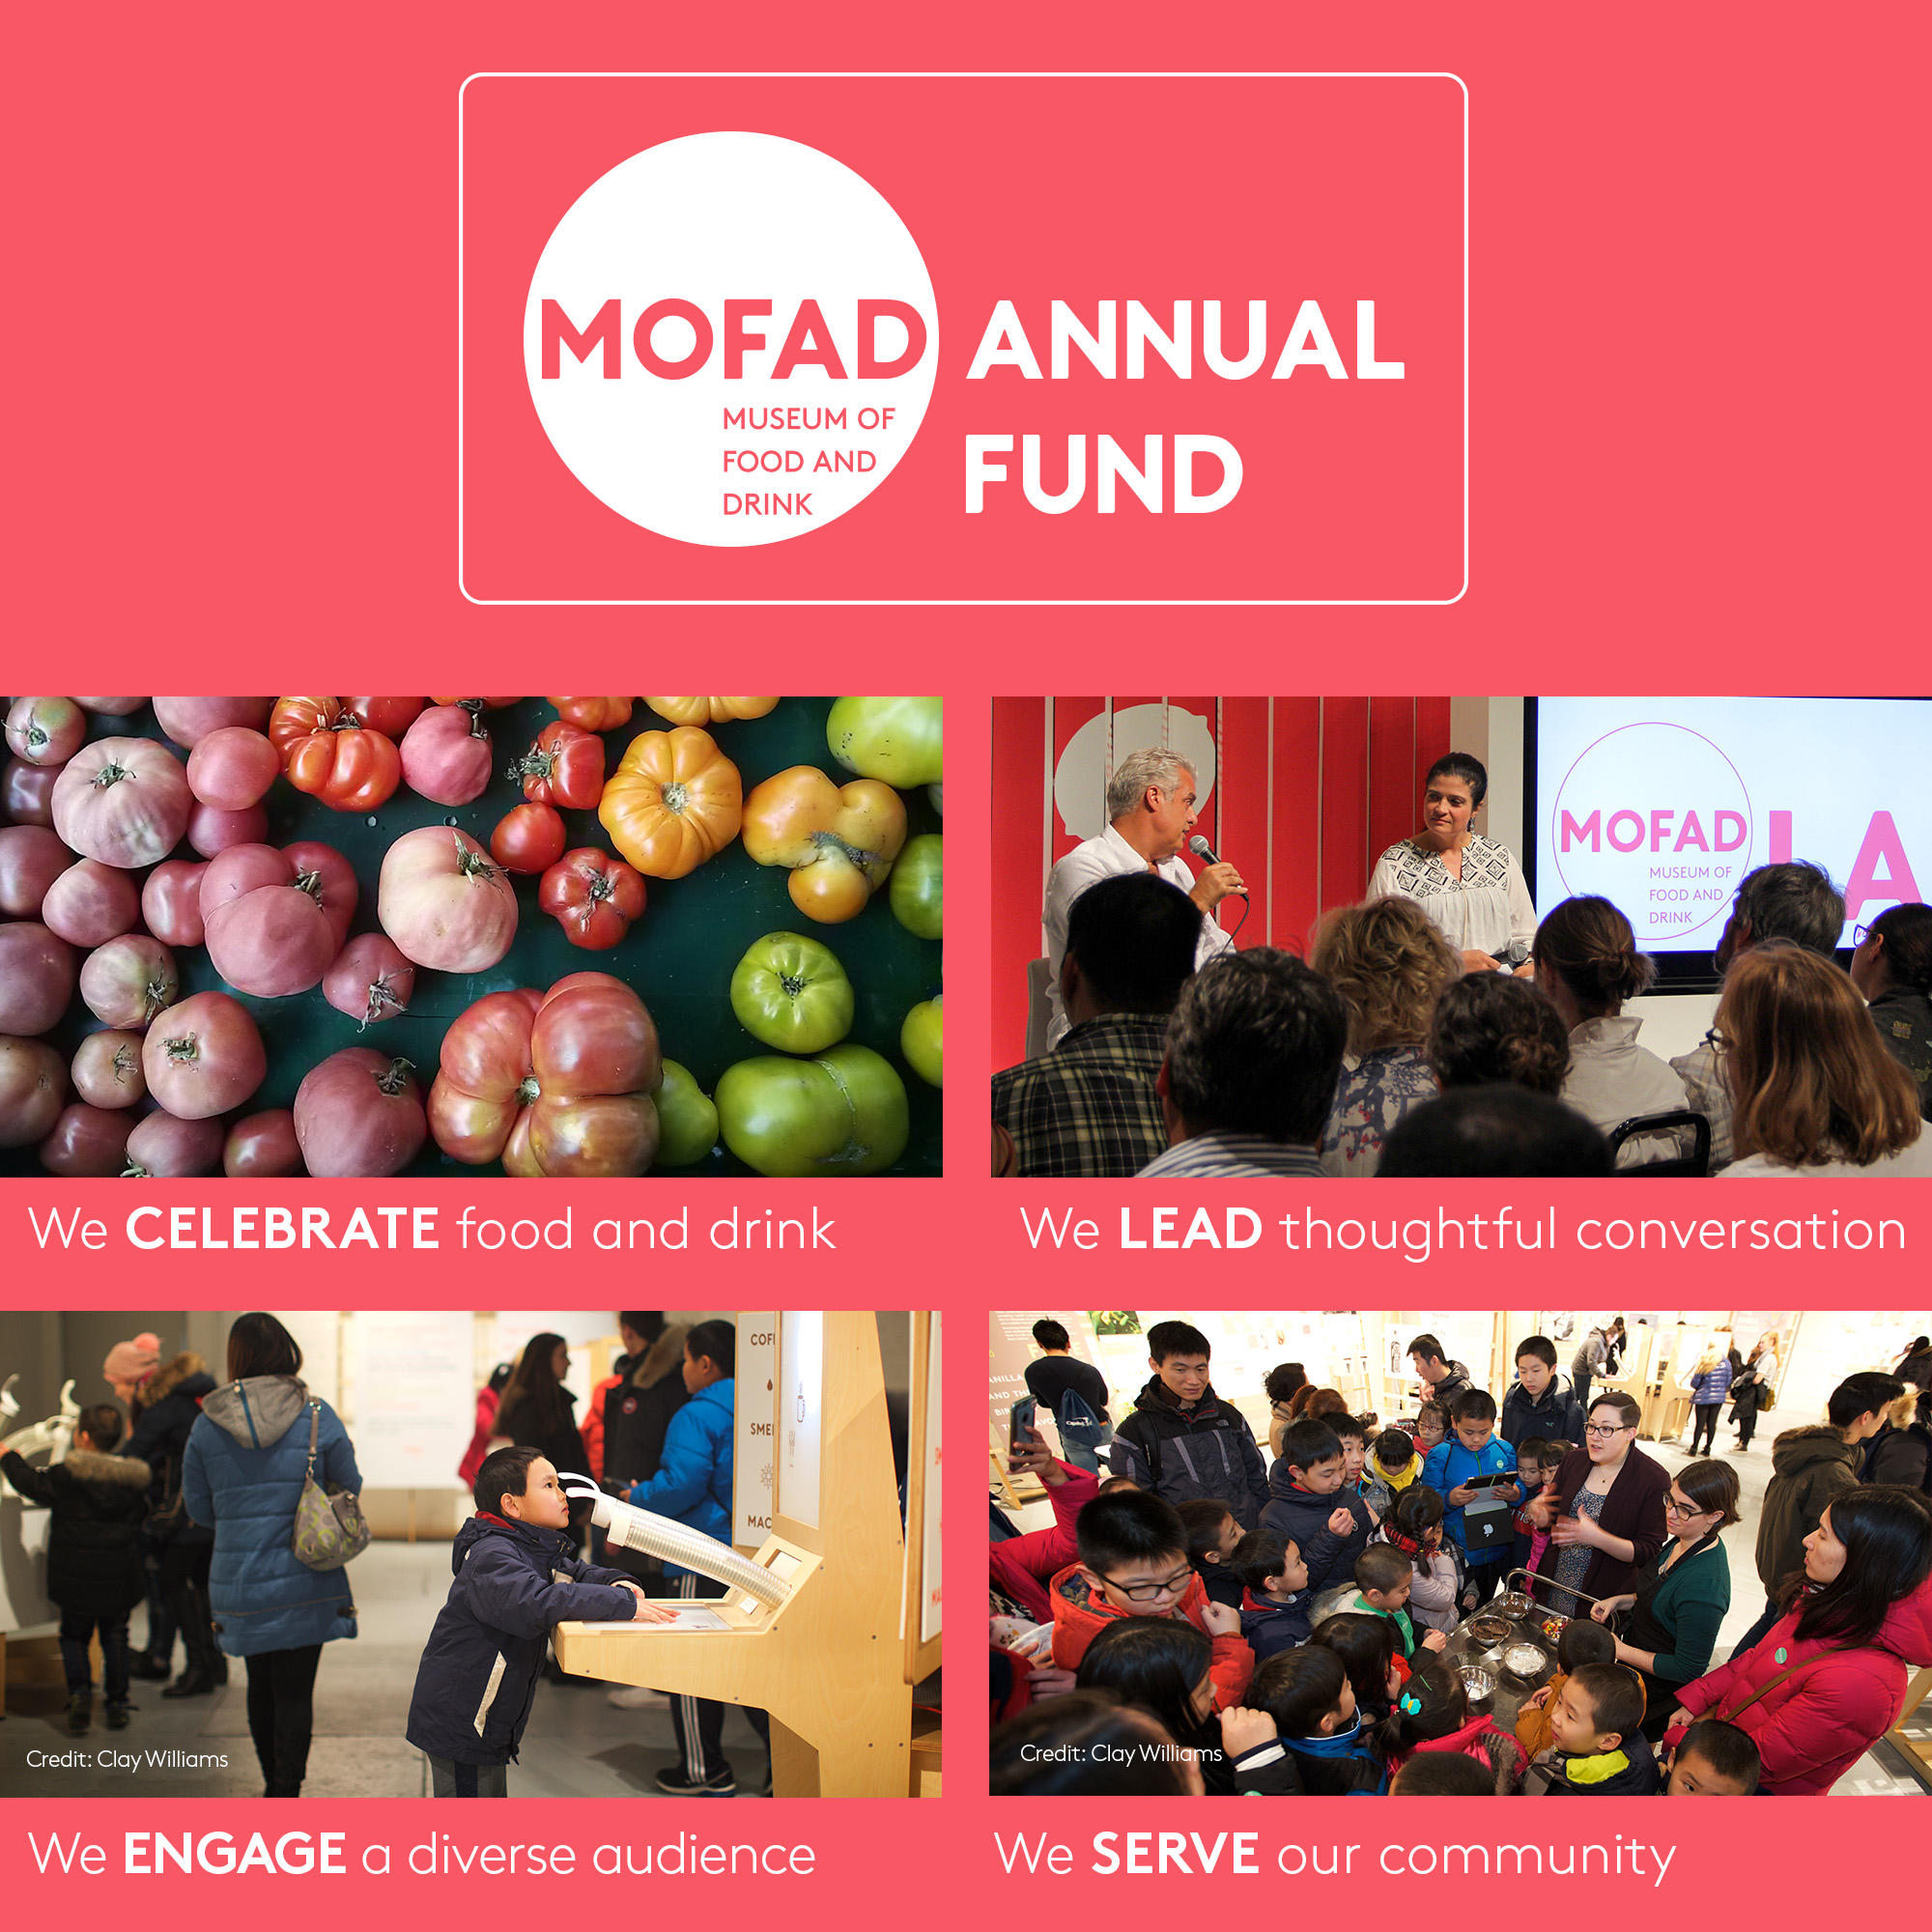 MOFAD Annual Fund